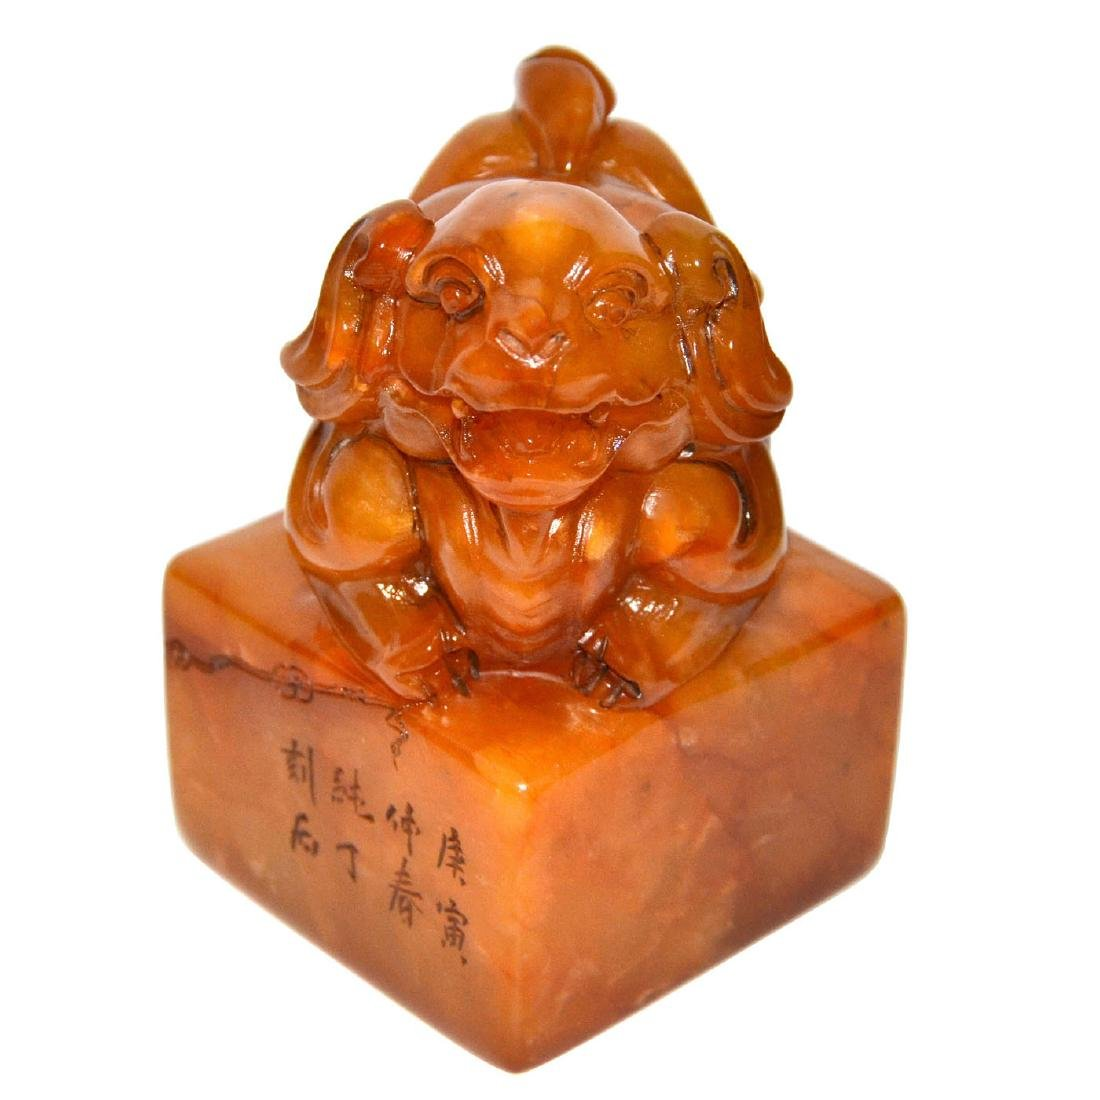 A Large Tianhuang Square Seal with Recumbent Lion as